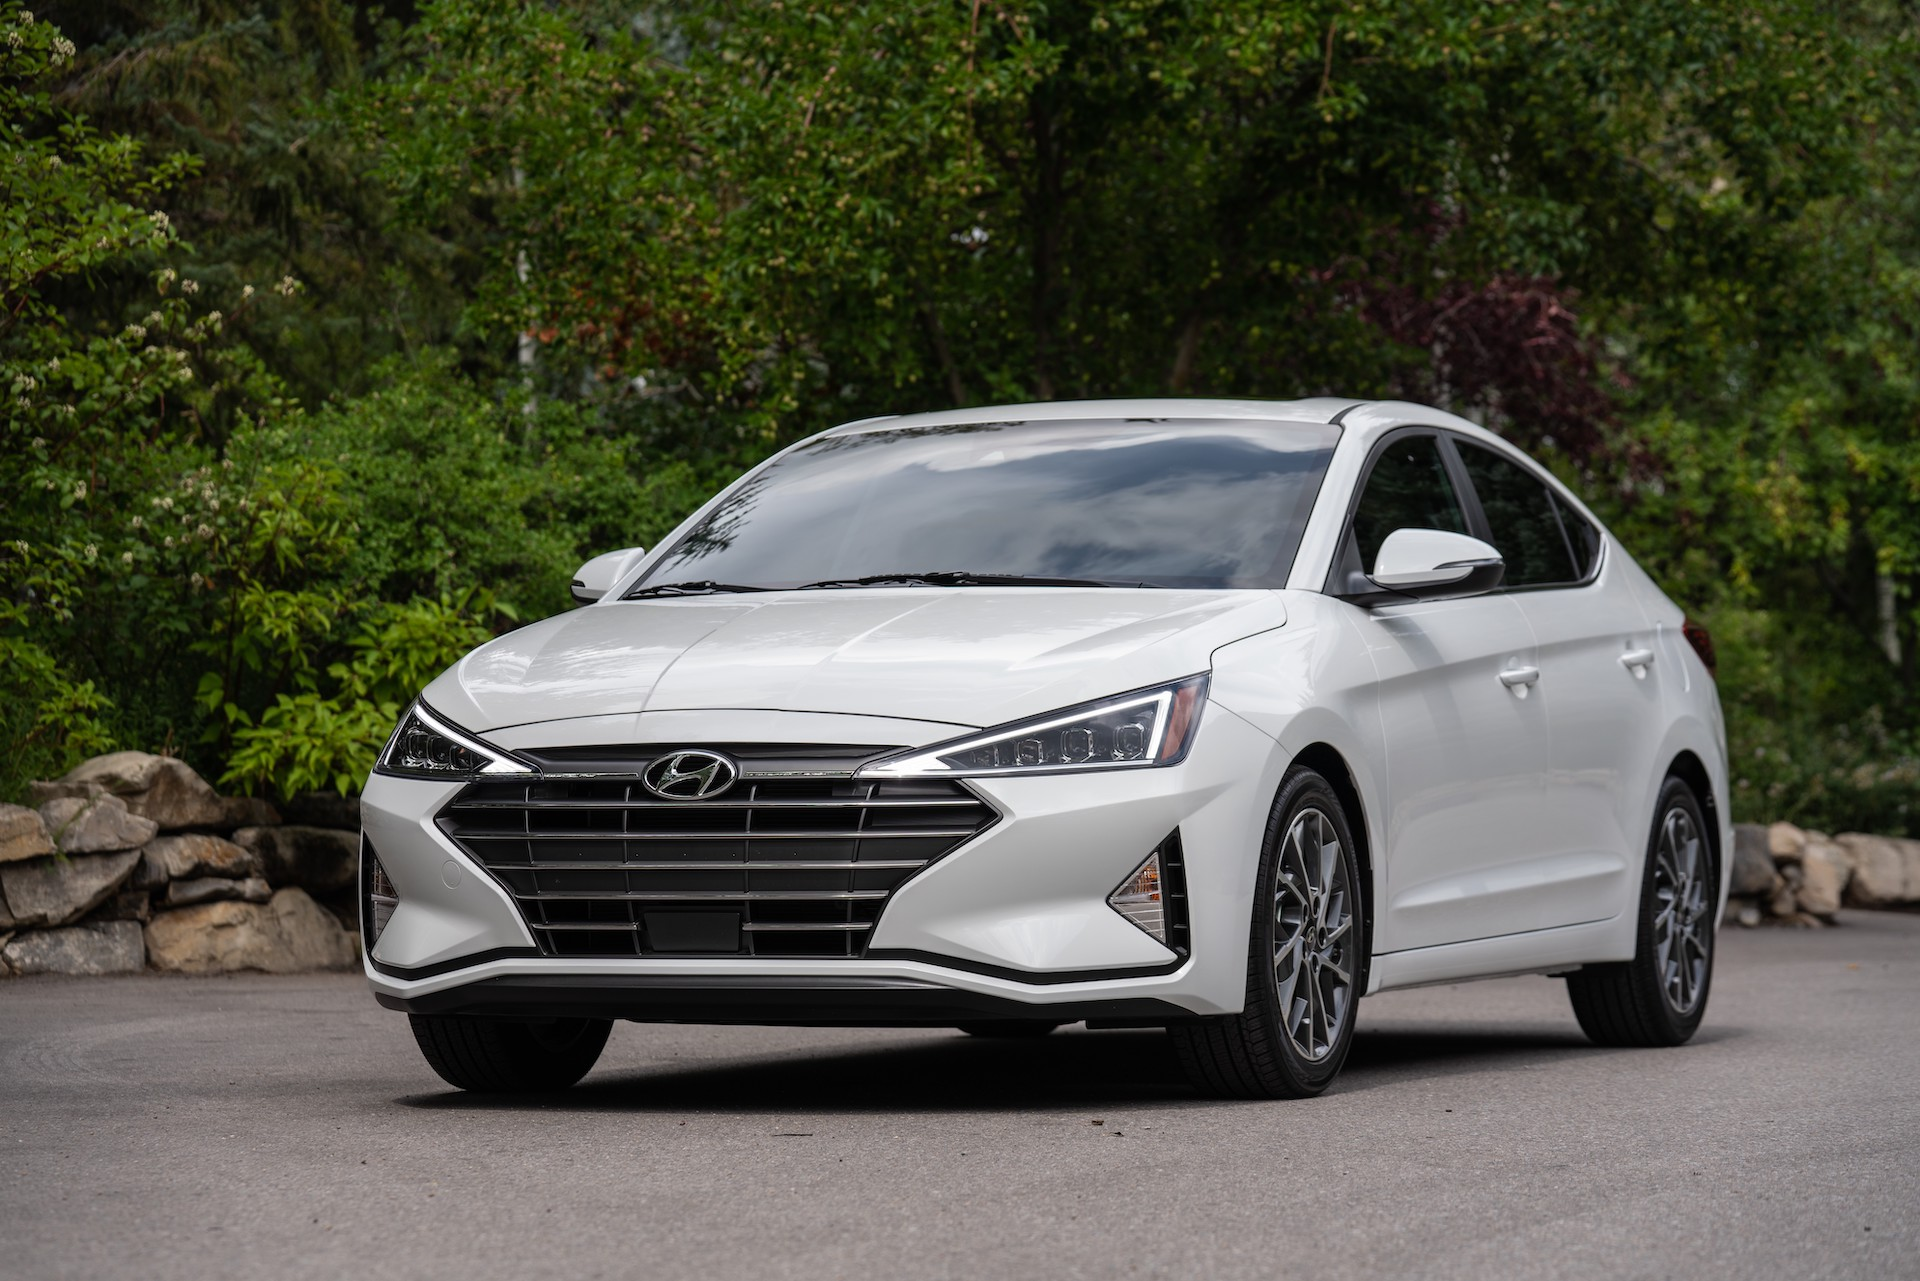 2020 Hyundai Elantra Sedan Photos